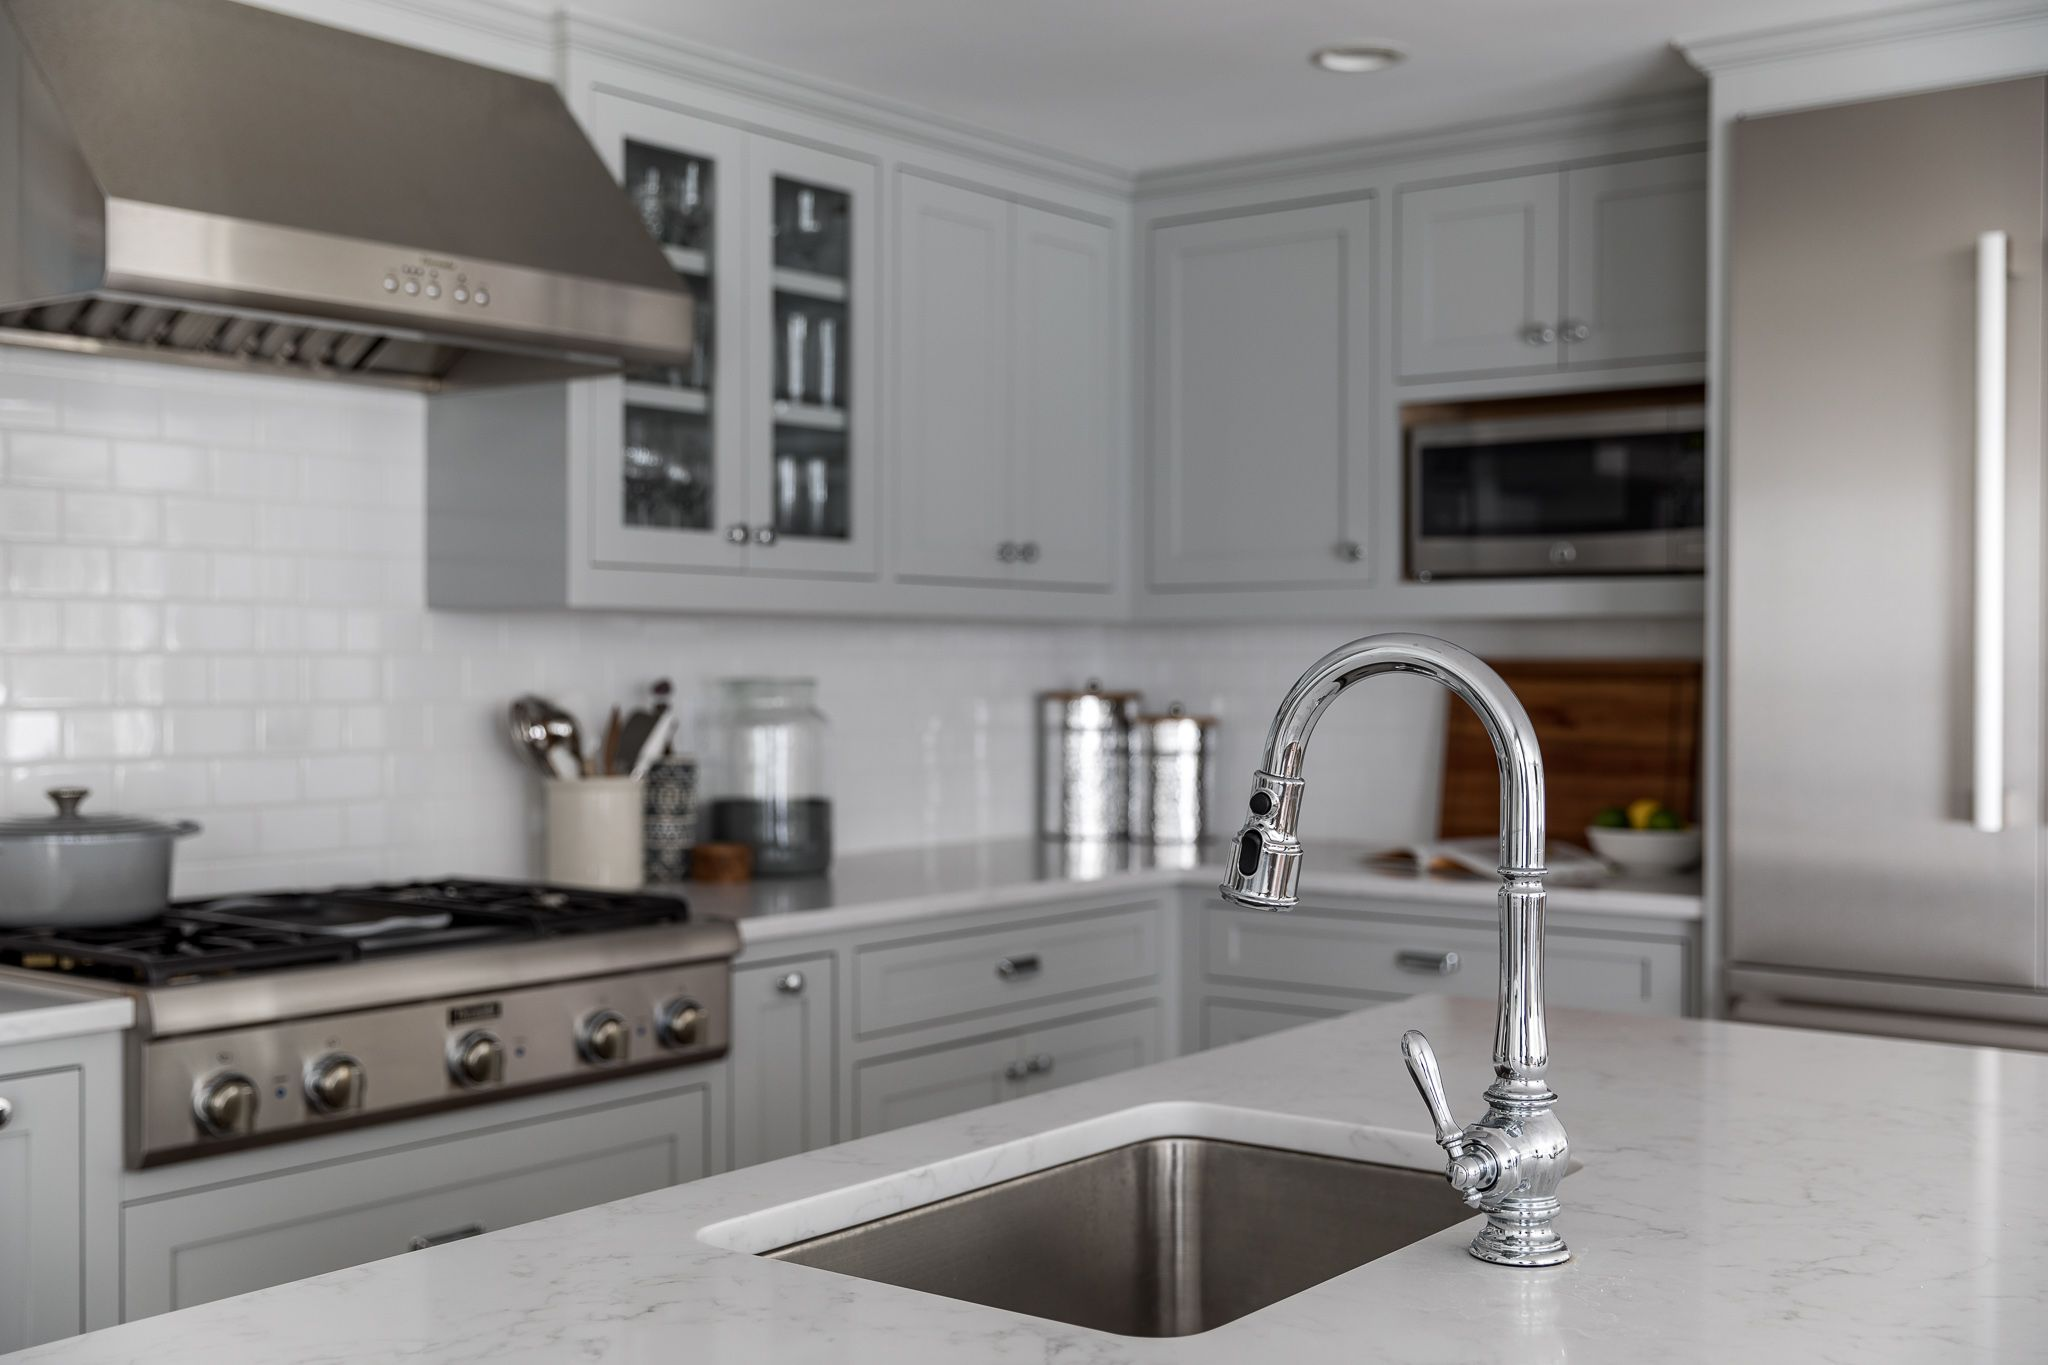 Woods End Project Kitchen Remodel Quartz Counters Gray Kitchen Cabinets Are Benjamin Moore Metropolit Kitchen Decor Grey Grey Kitchen Designs Kitchen Design